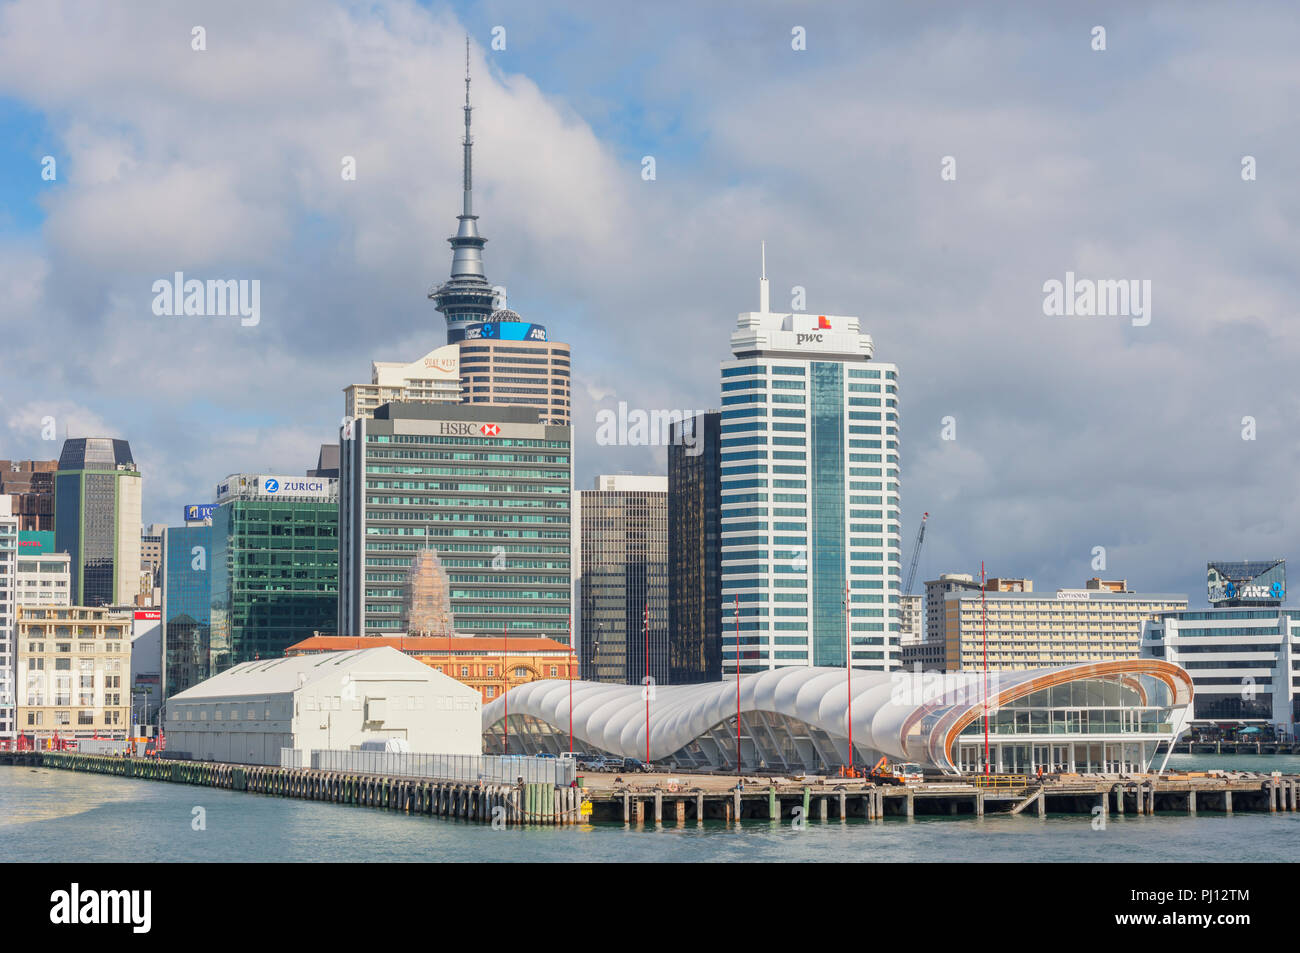 Auckland ferry terminal and Skyline, Auckland, North Island, New Zealand, - Stock Image